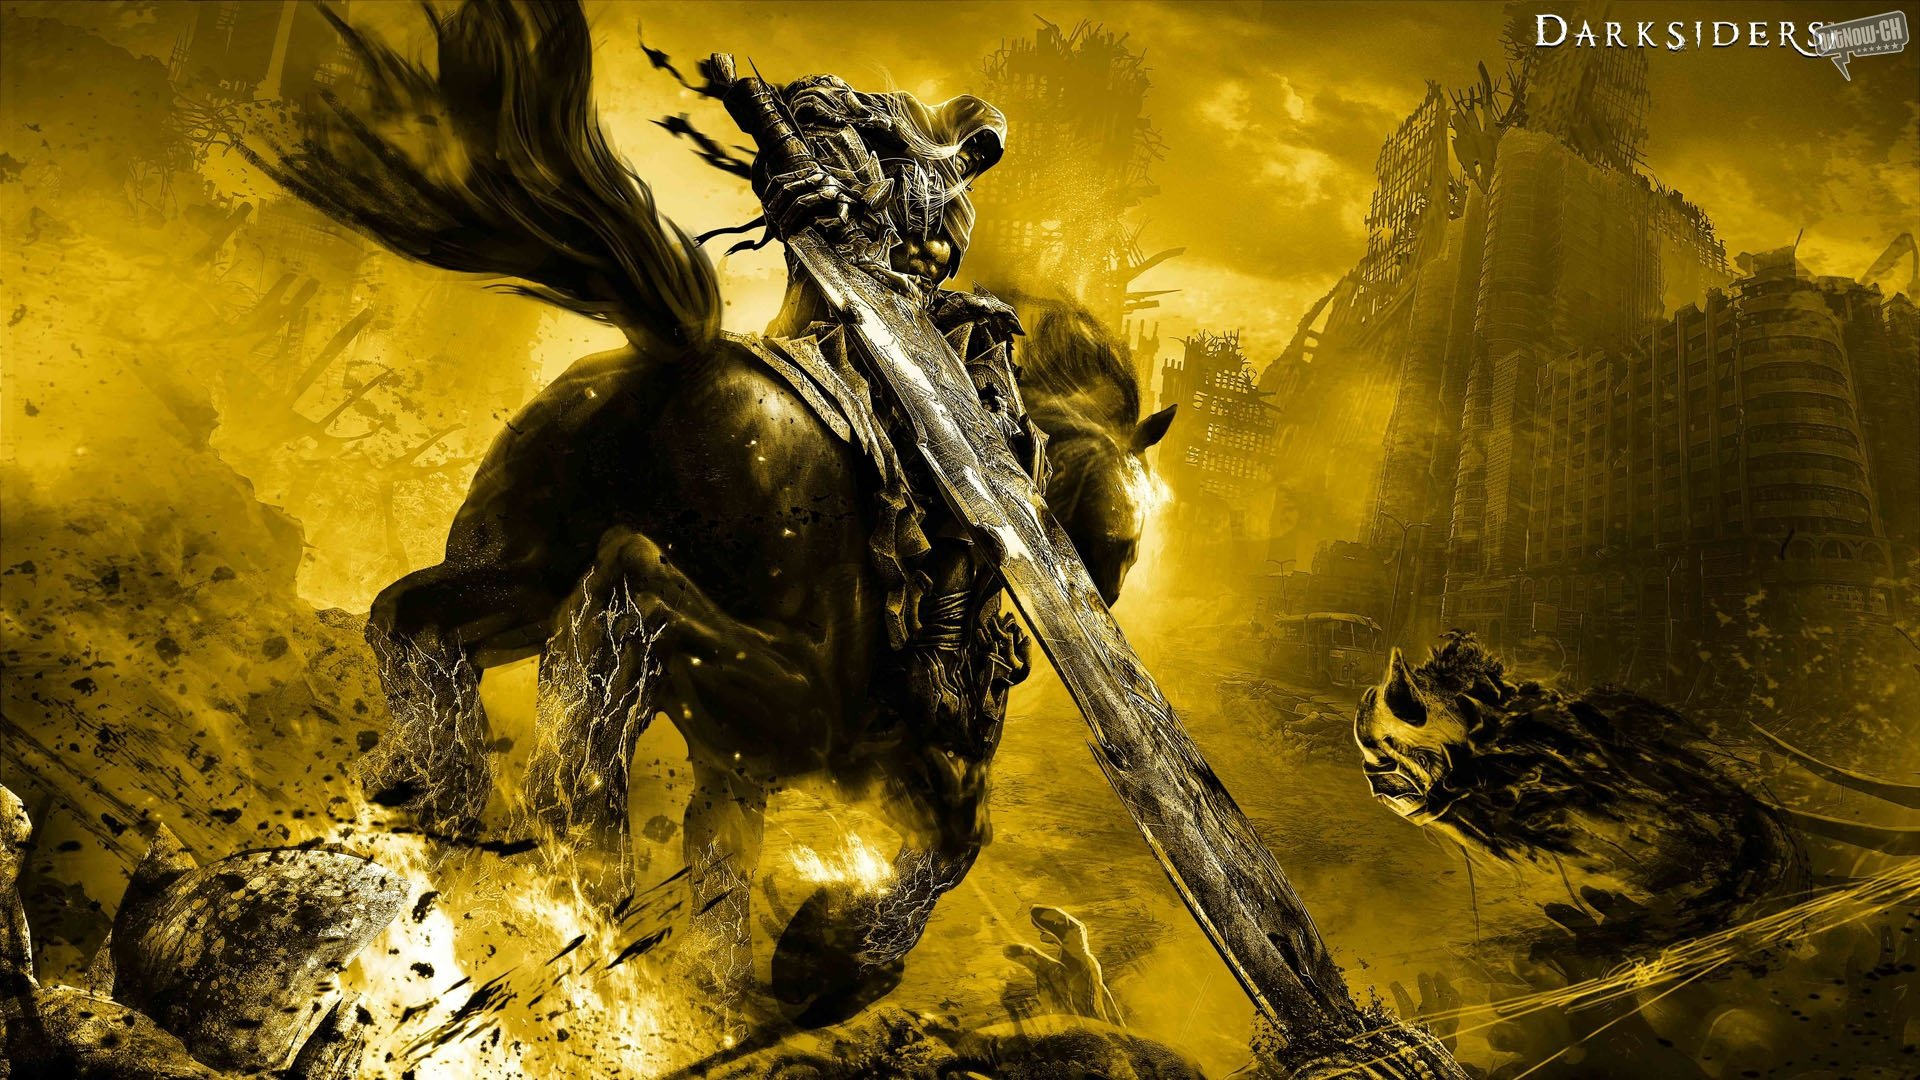 Darksiders War Wallpaper By: Darksiders Papel De Parede HD